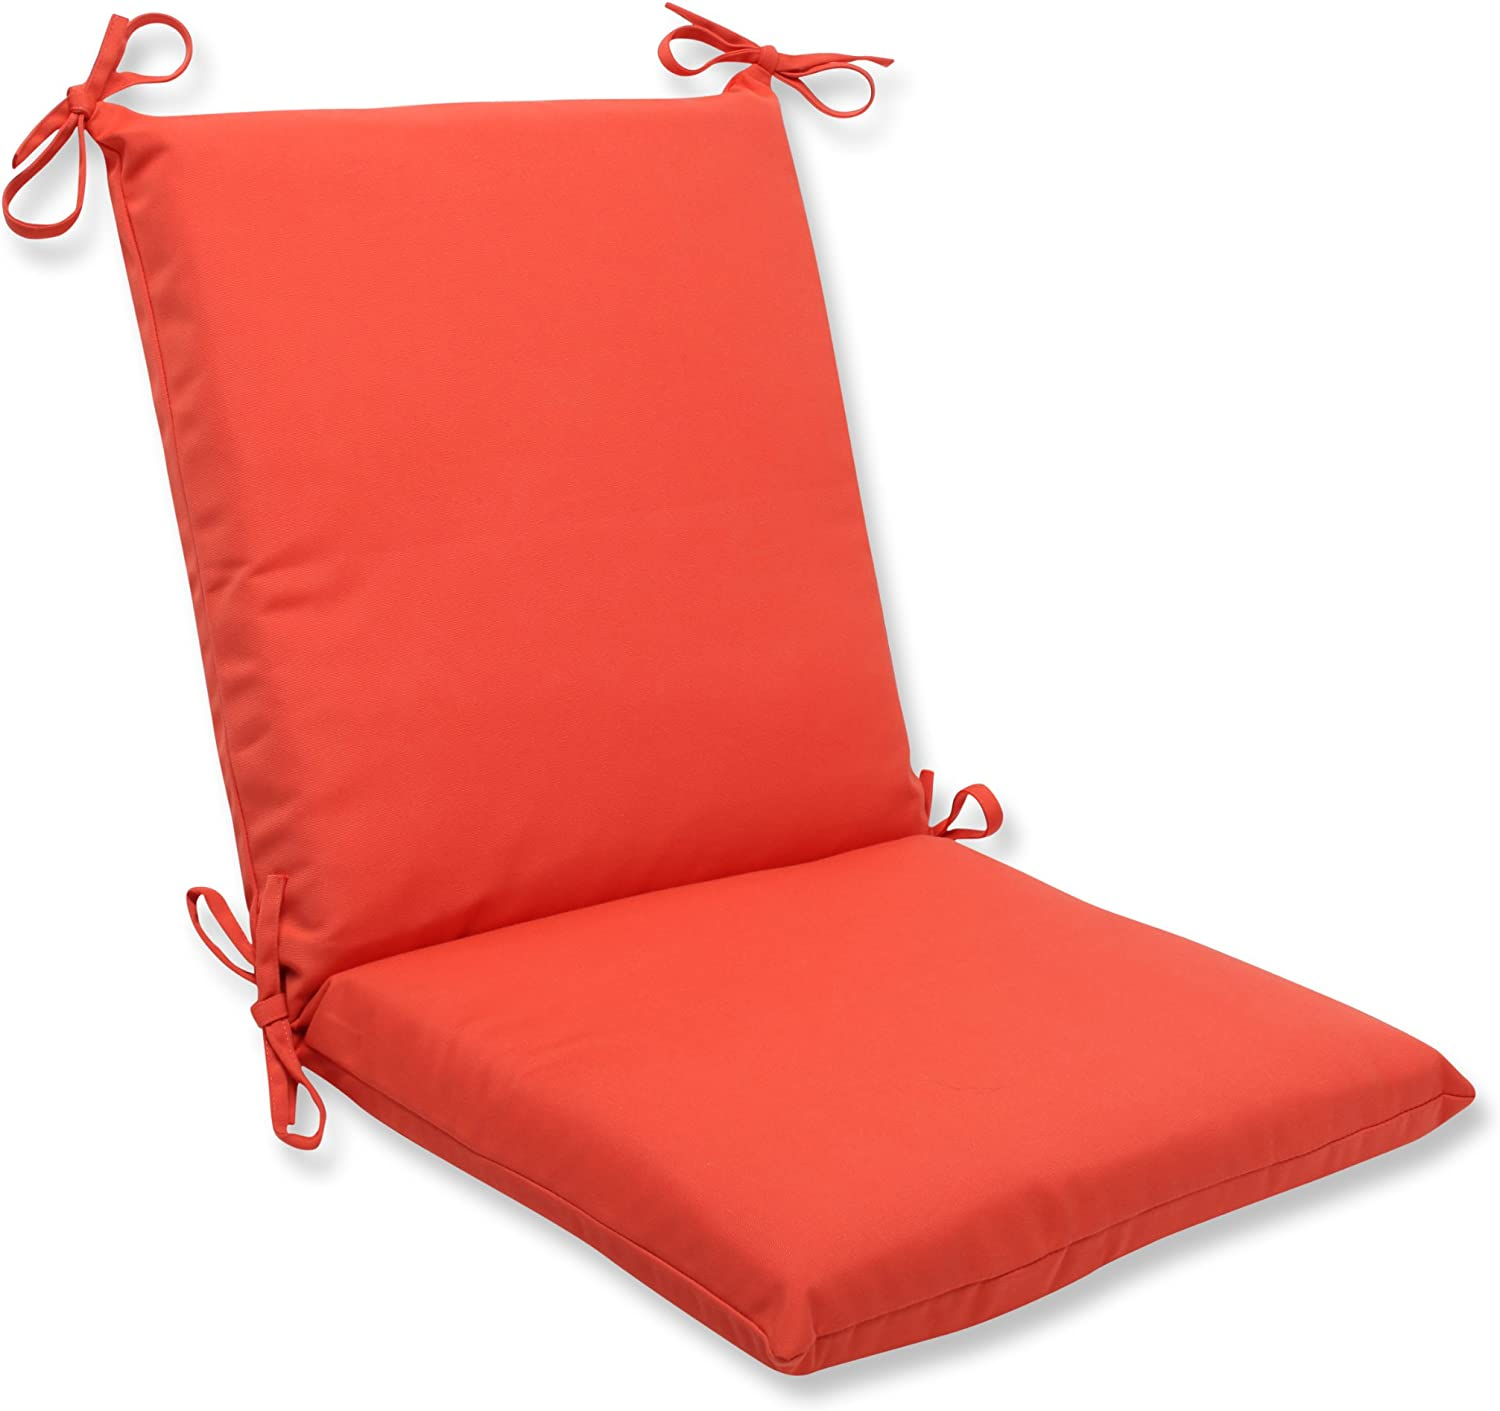 Pillow Perfect Indoor Outdoor Squared Corners Chair Cushion With Sunbrella Canvas Melon Fabric 36 5 In L X 18 In W X 3 In D Orange Home Kitchen